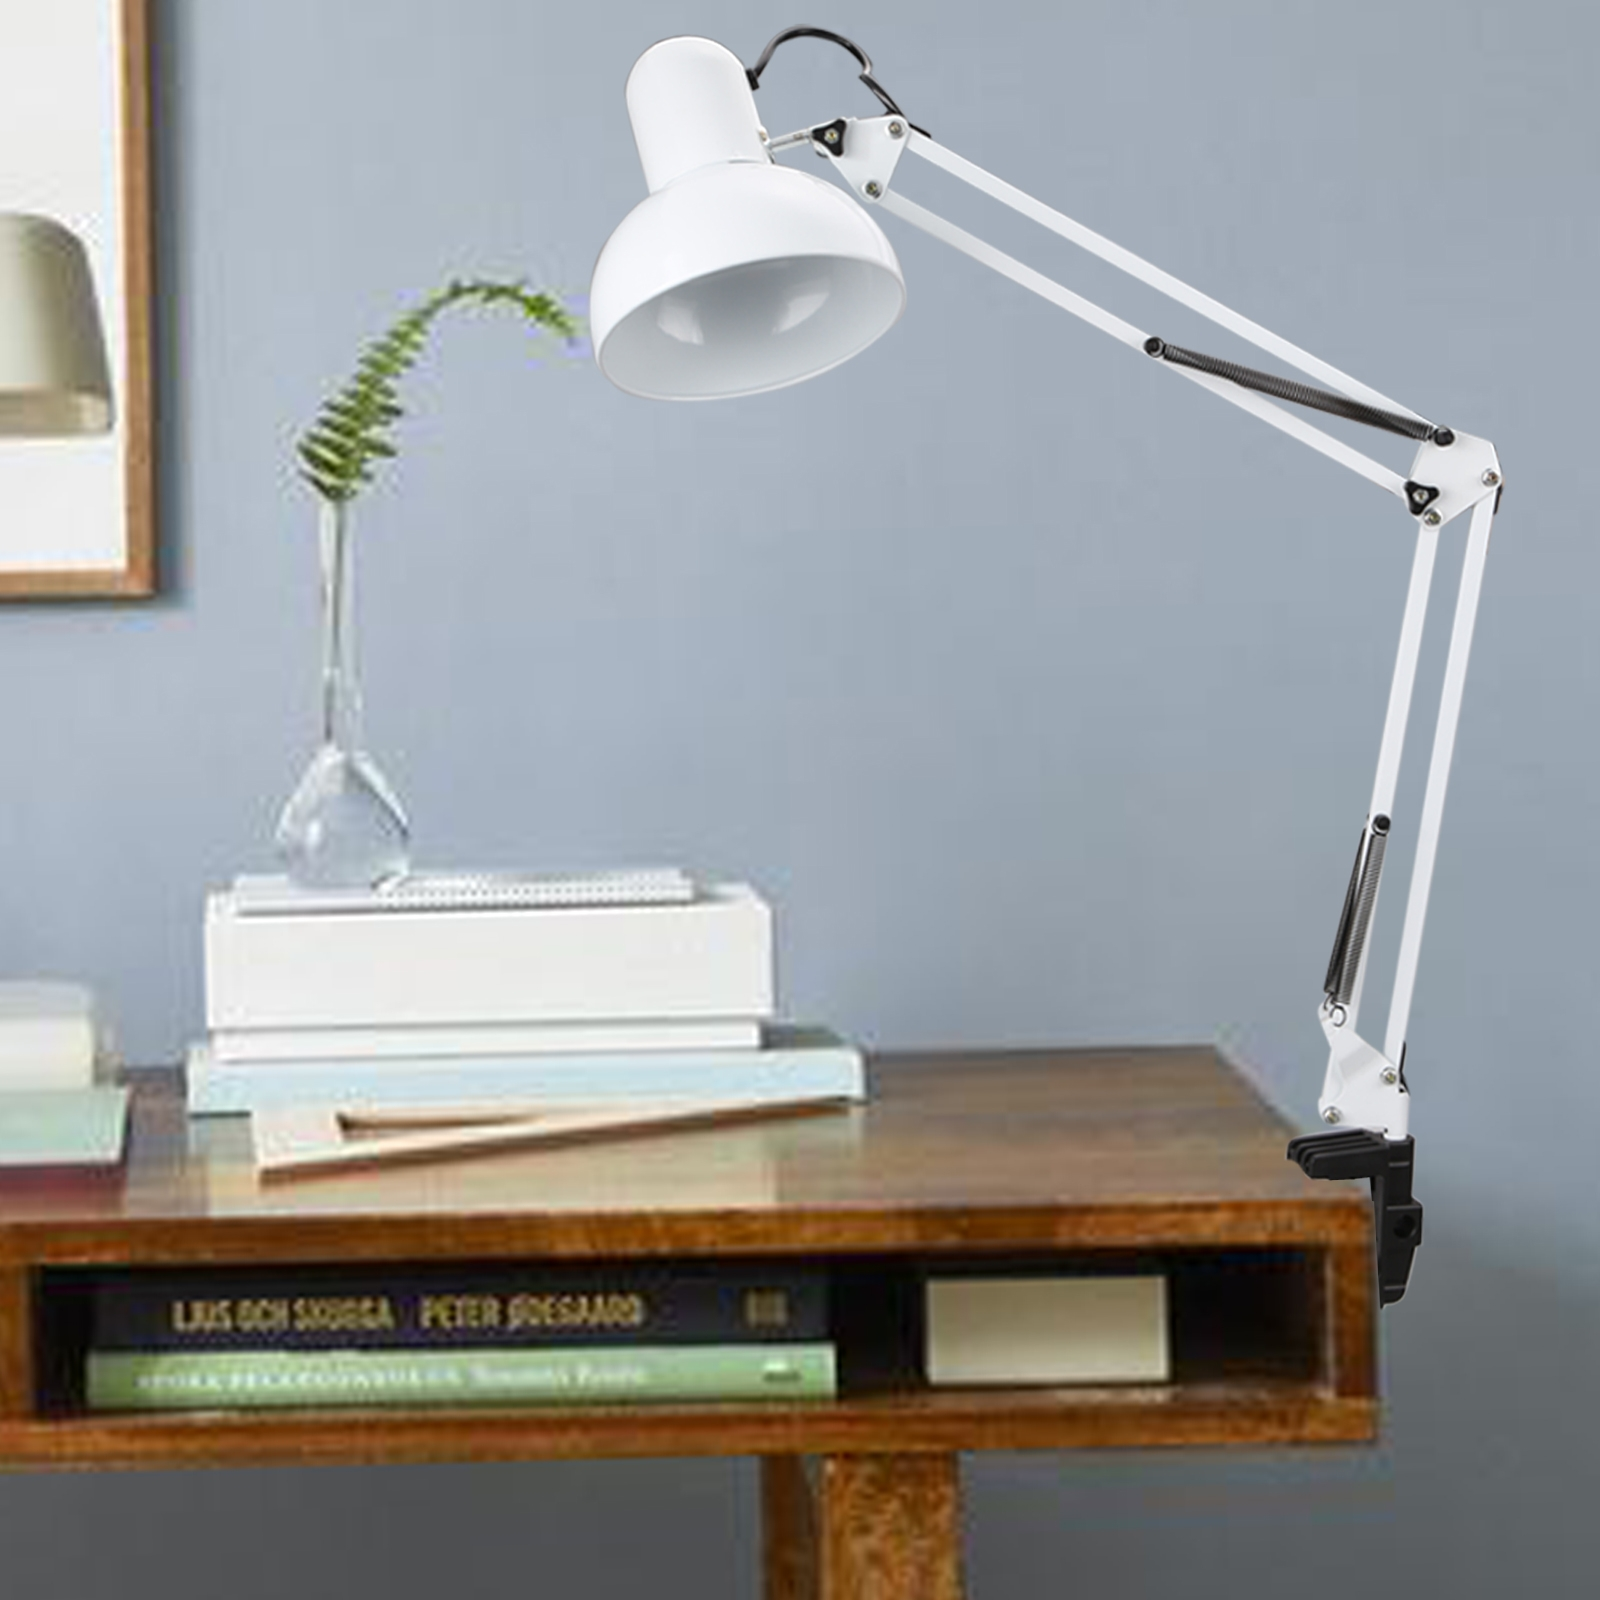 Homdox Adjustable Eyes Care Clamp Table Desk Lamp Light Swing Arm Lamp by